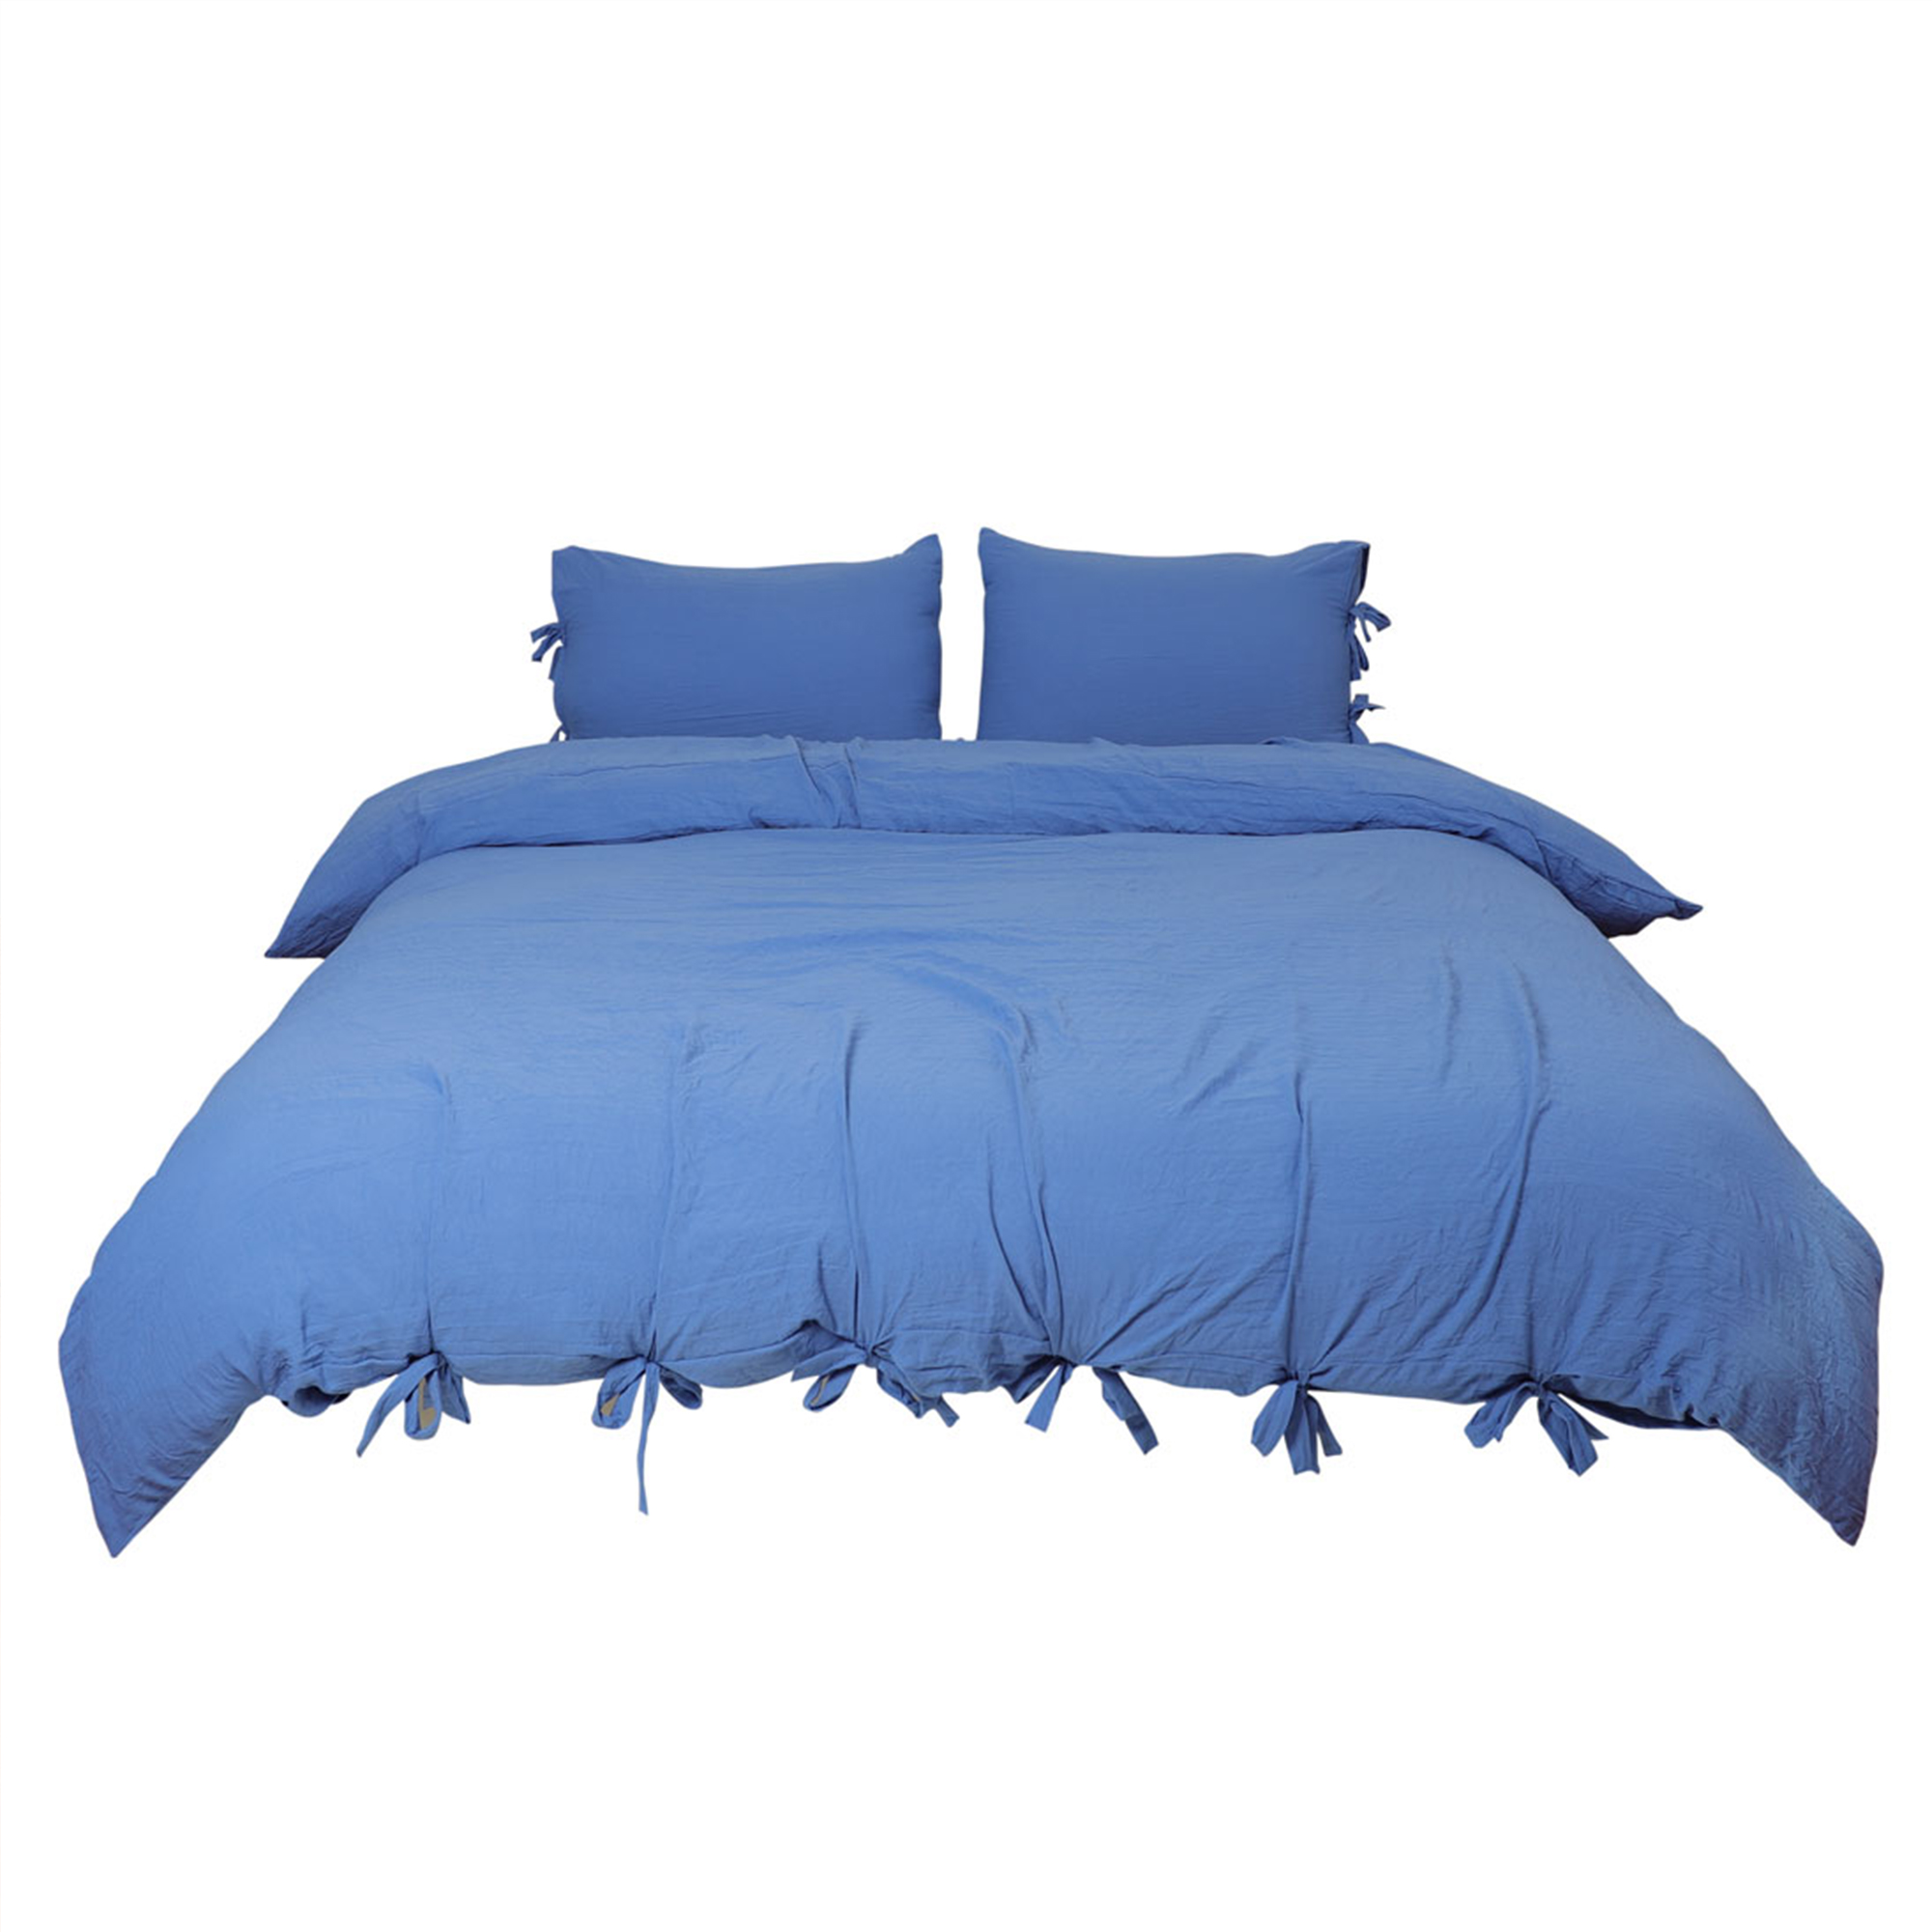 Luxury Duvet Cover and Sham Bedding Set Soft Washed Cotton Bowknot Tan King